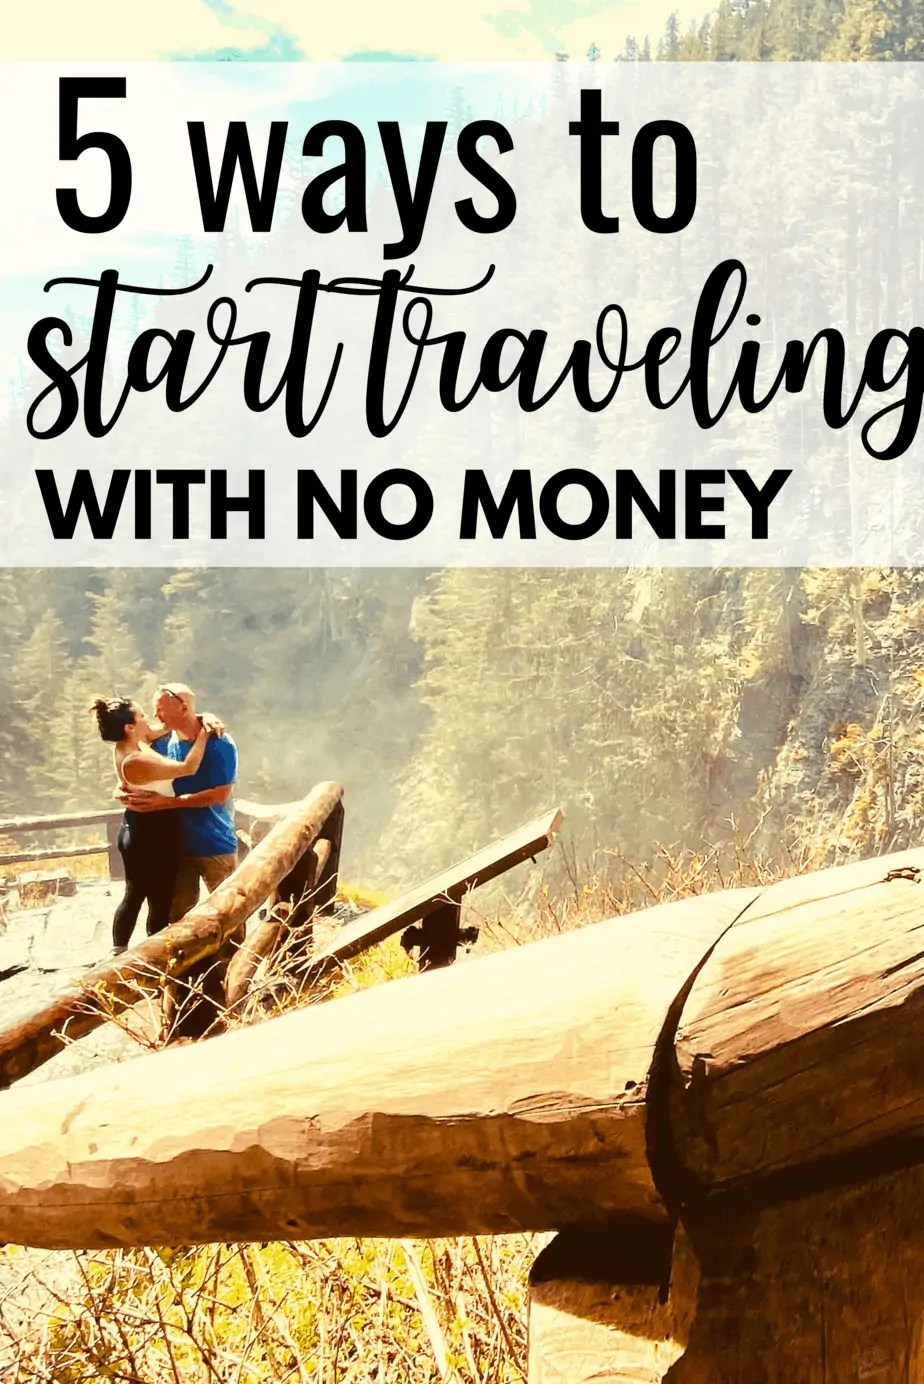 Want to travel more but have absolutely no money? Start with these 5 things our family did to live wanderlust on a tight budget!